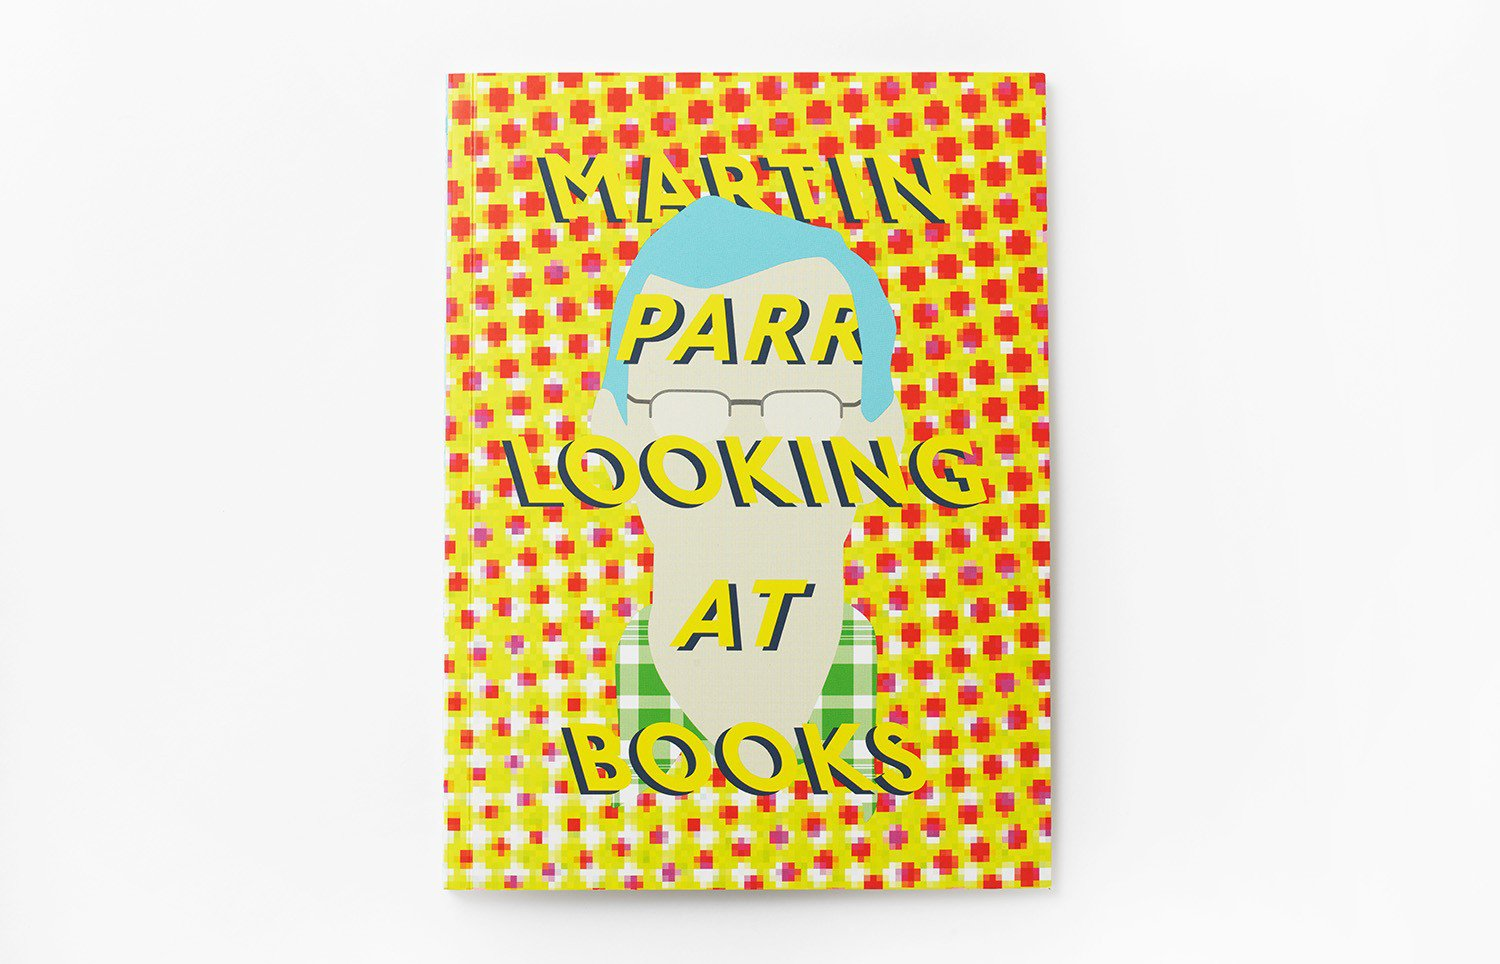 martin parr looking at books 2